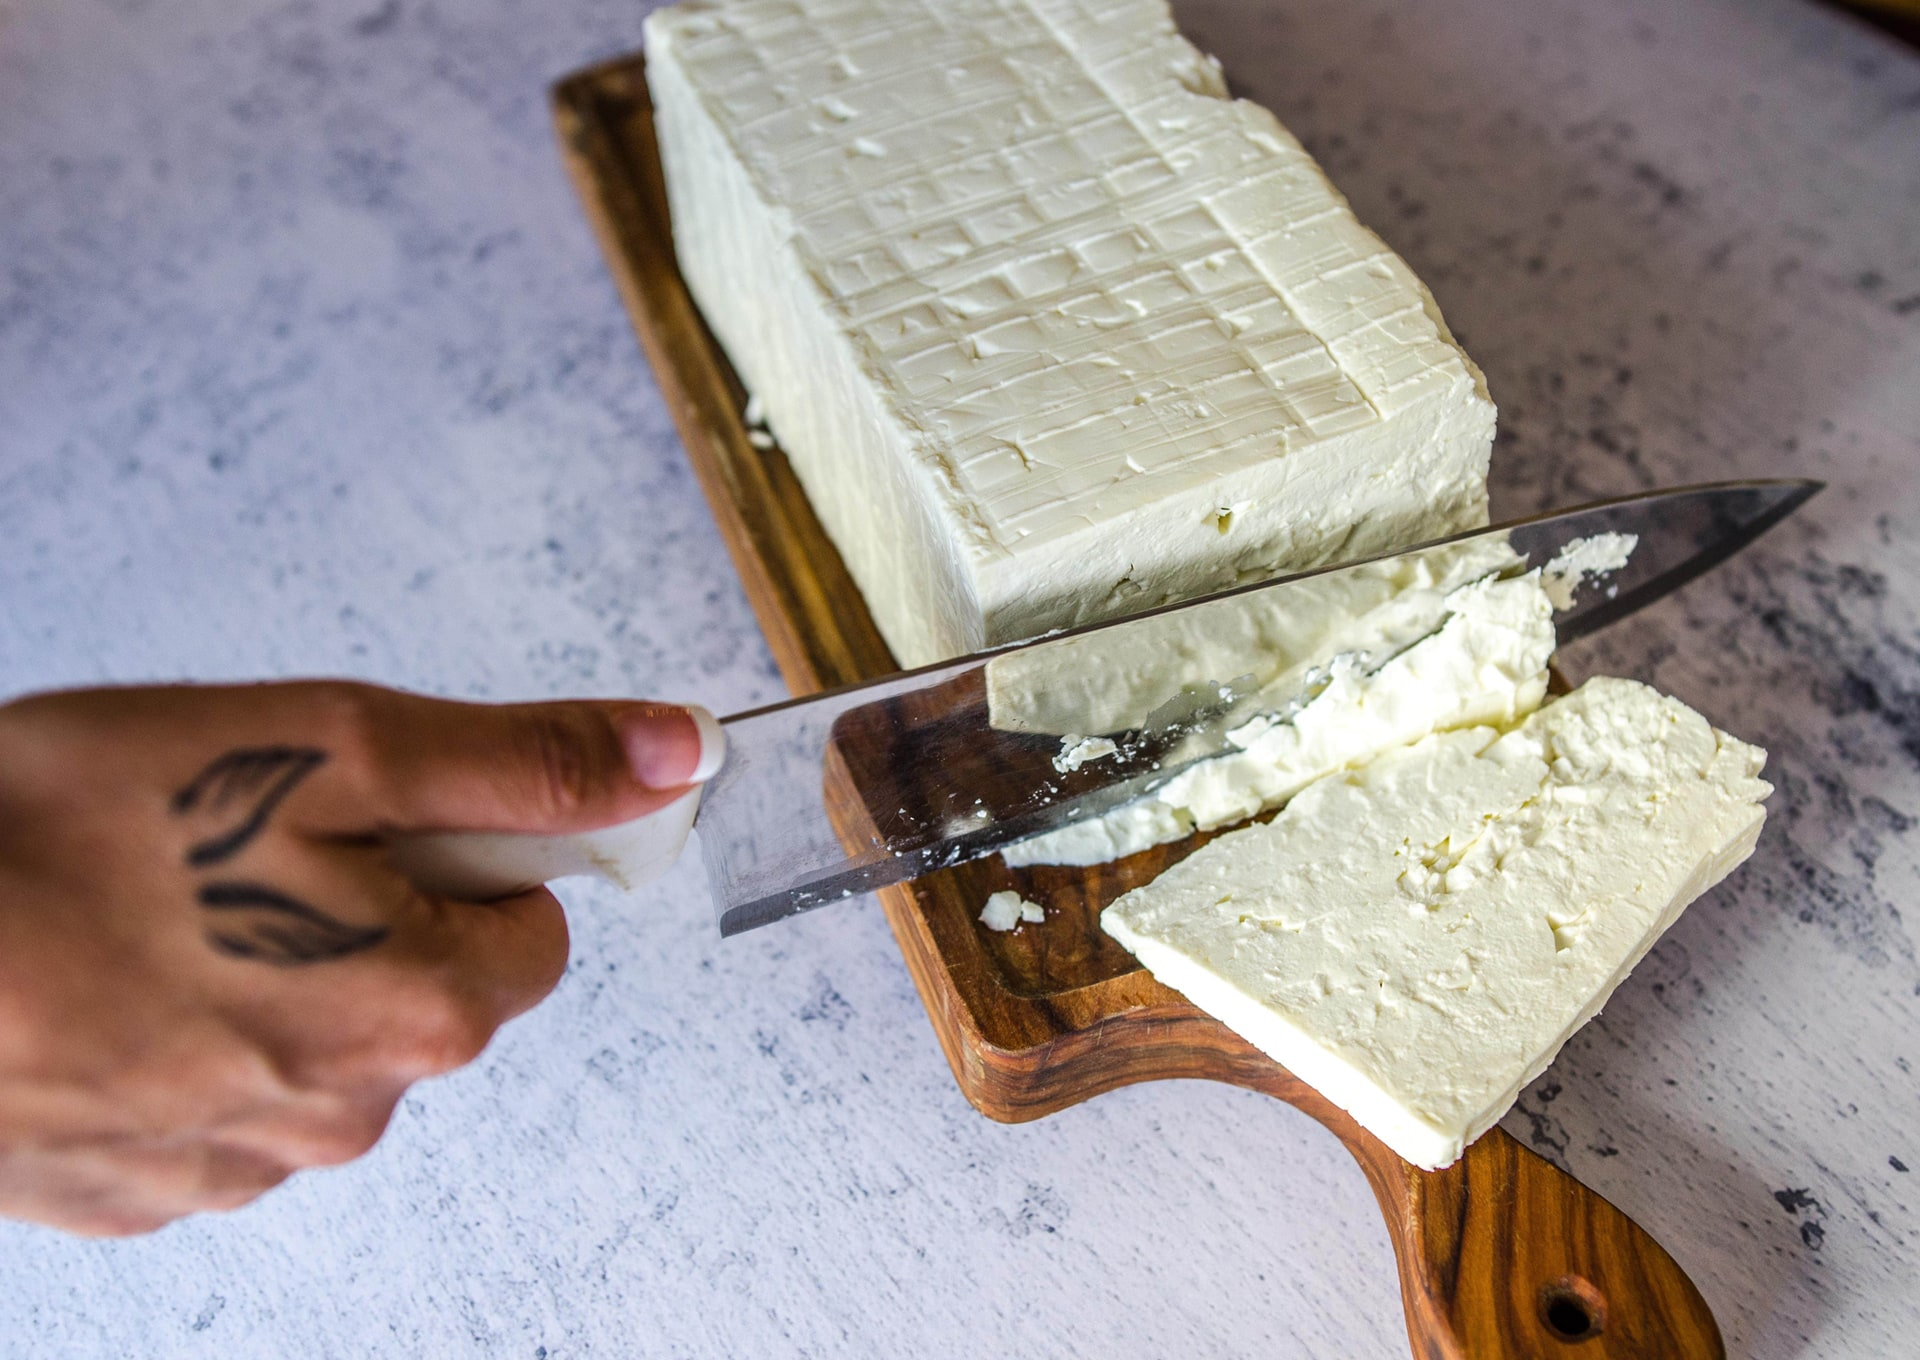 WE ONLY USE THE MOST AWARDED FETA TO MAKE EVERYTHING BETTER